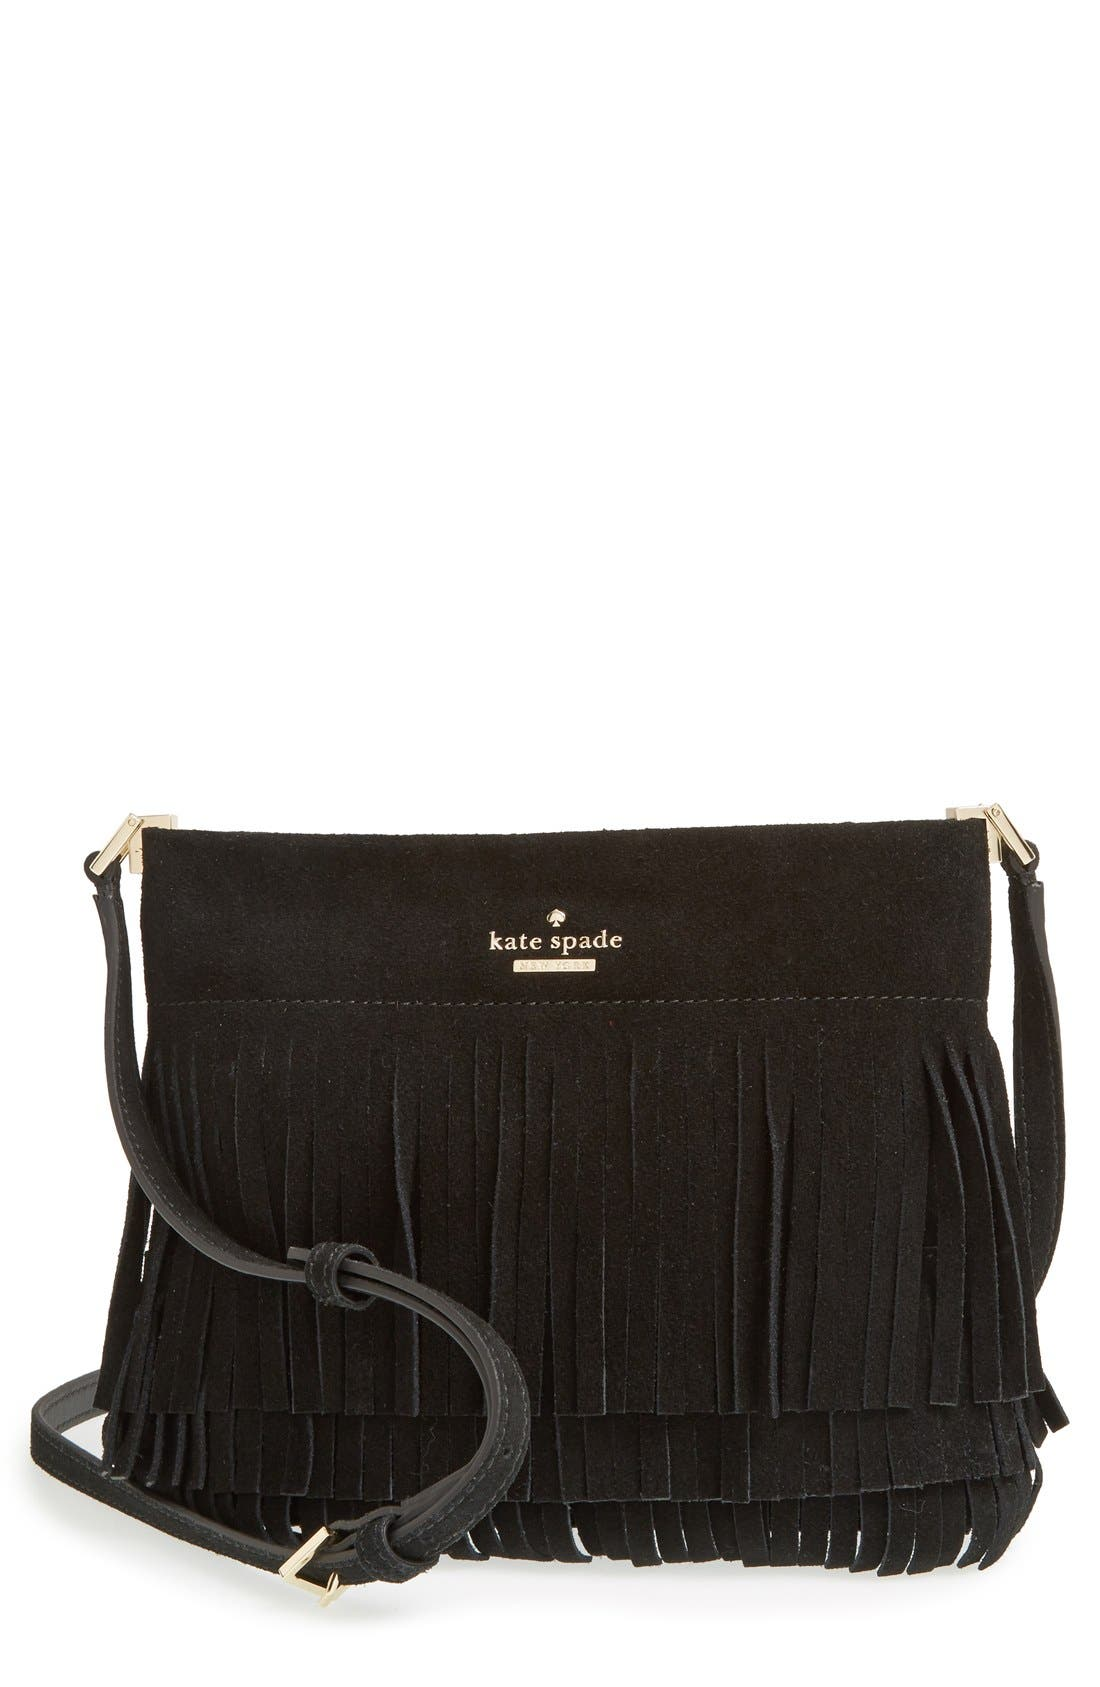 Main Image - kate spade new york 'sycamore run - cristi' suede fringe crossbody bag